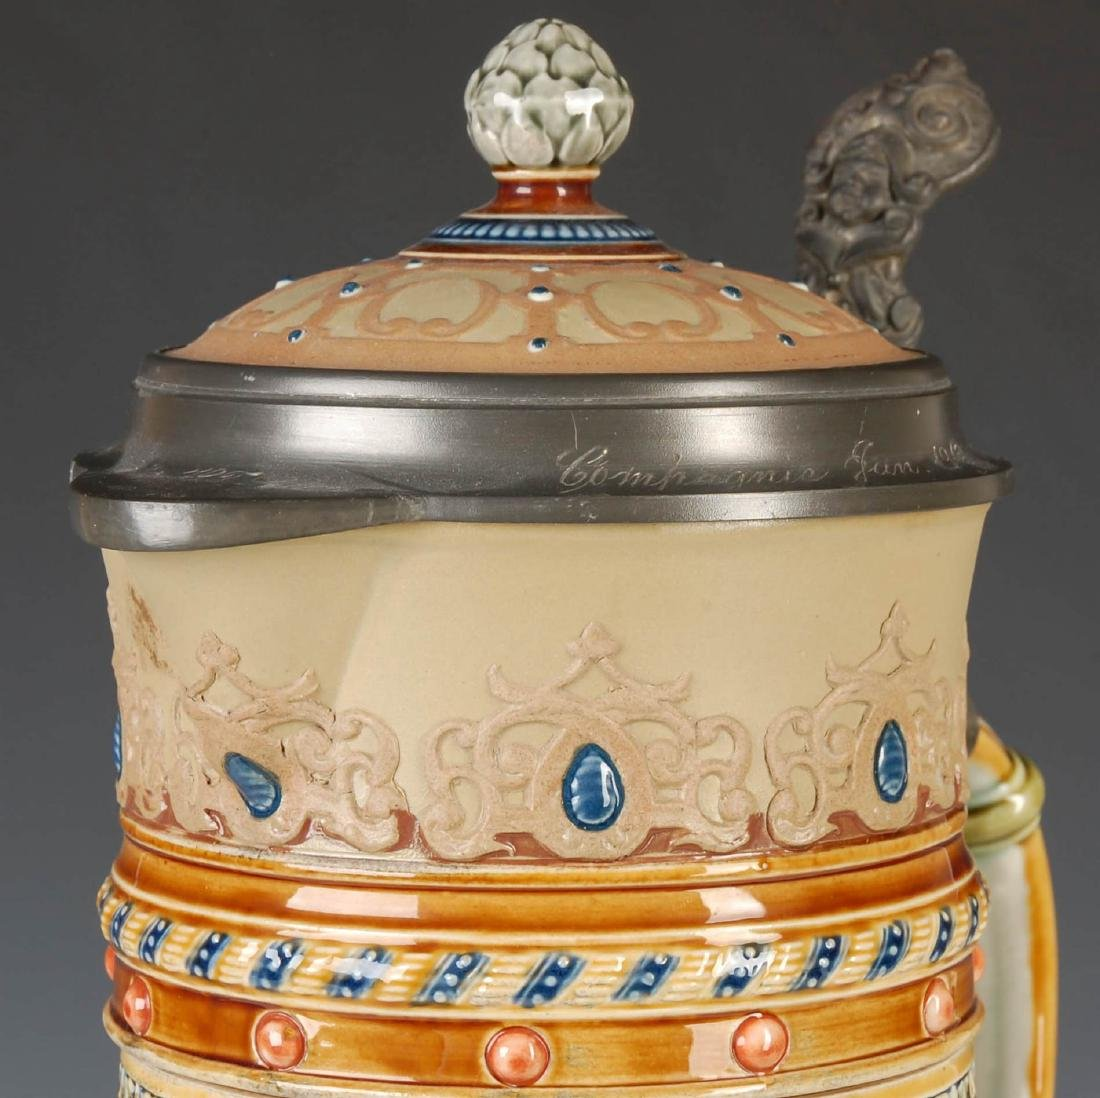 A 17-INCH METTLACH ETCHED AND JEWELED STEIN #1940 - 5